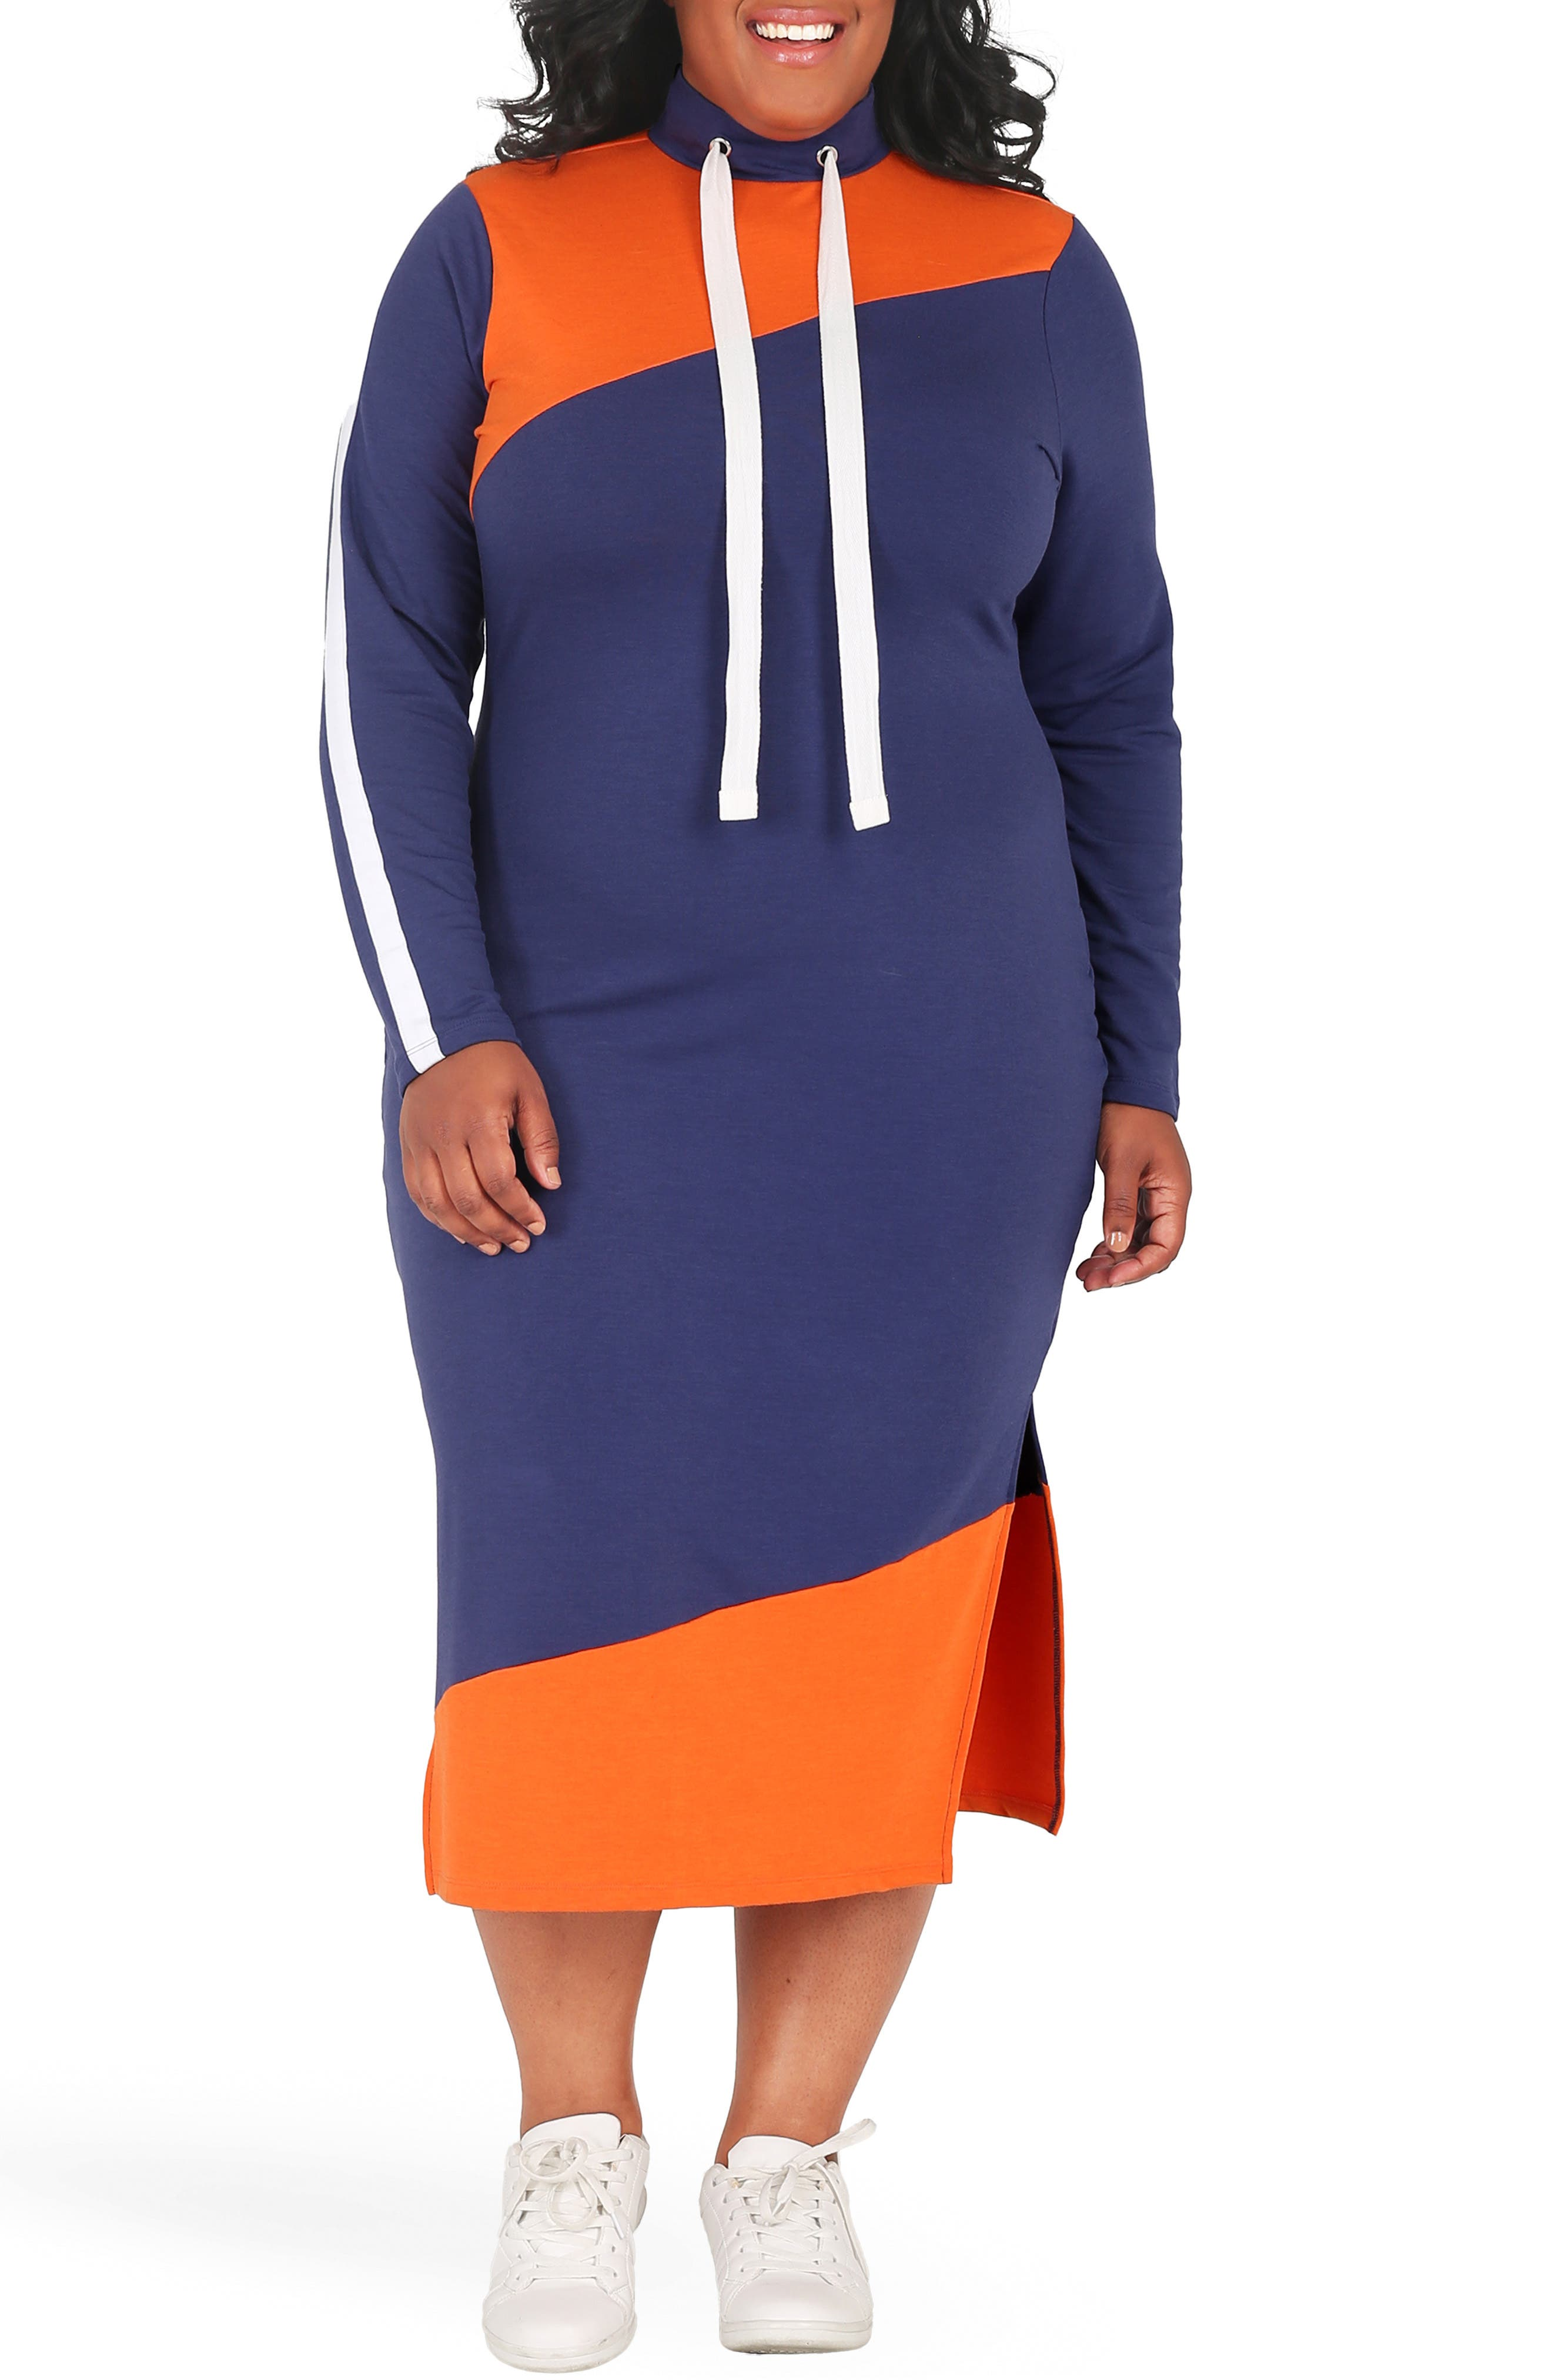 Wanda Colorblock Midi Dress,                             Main thumbnail 1, color,                             NAVY